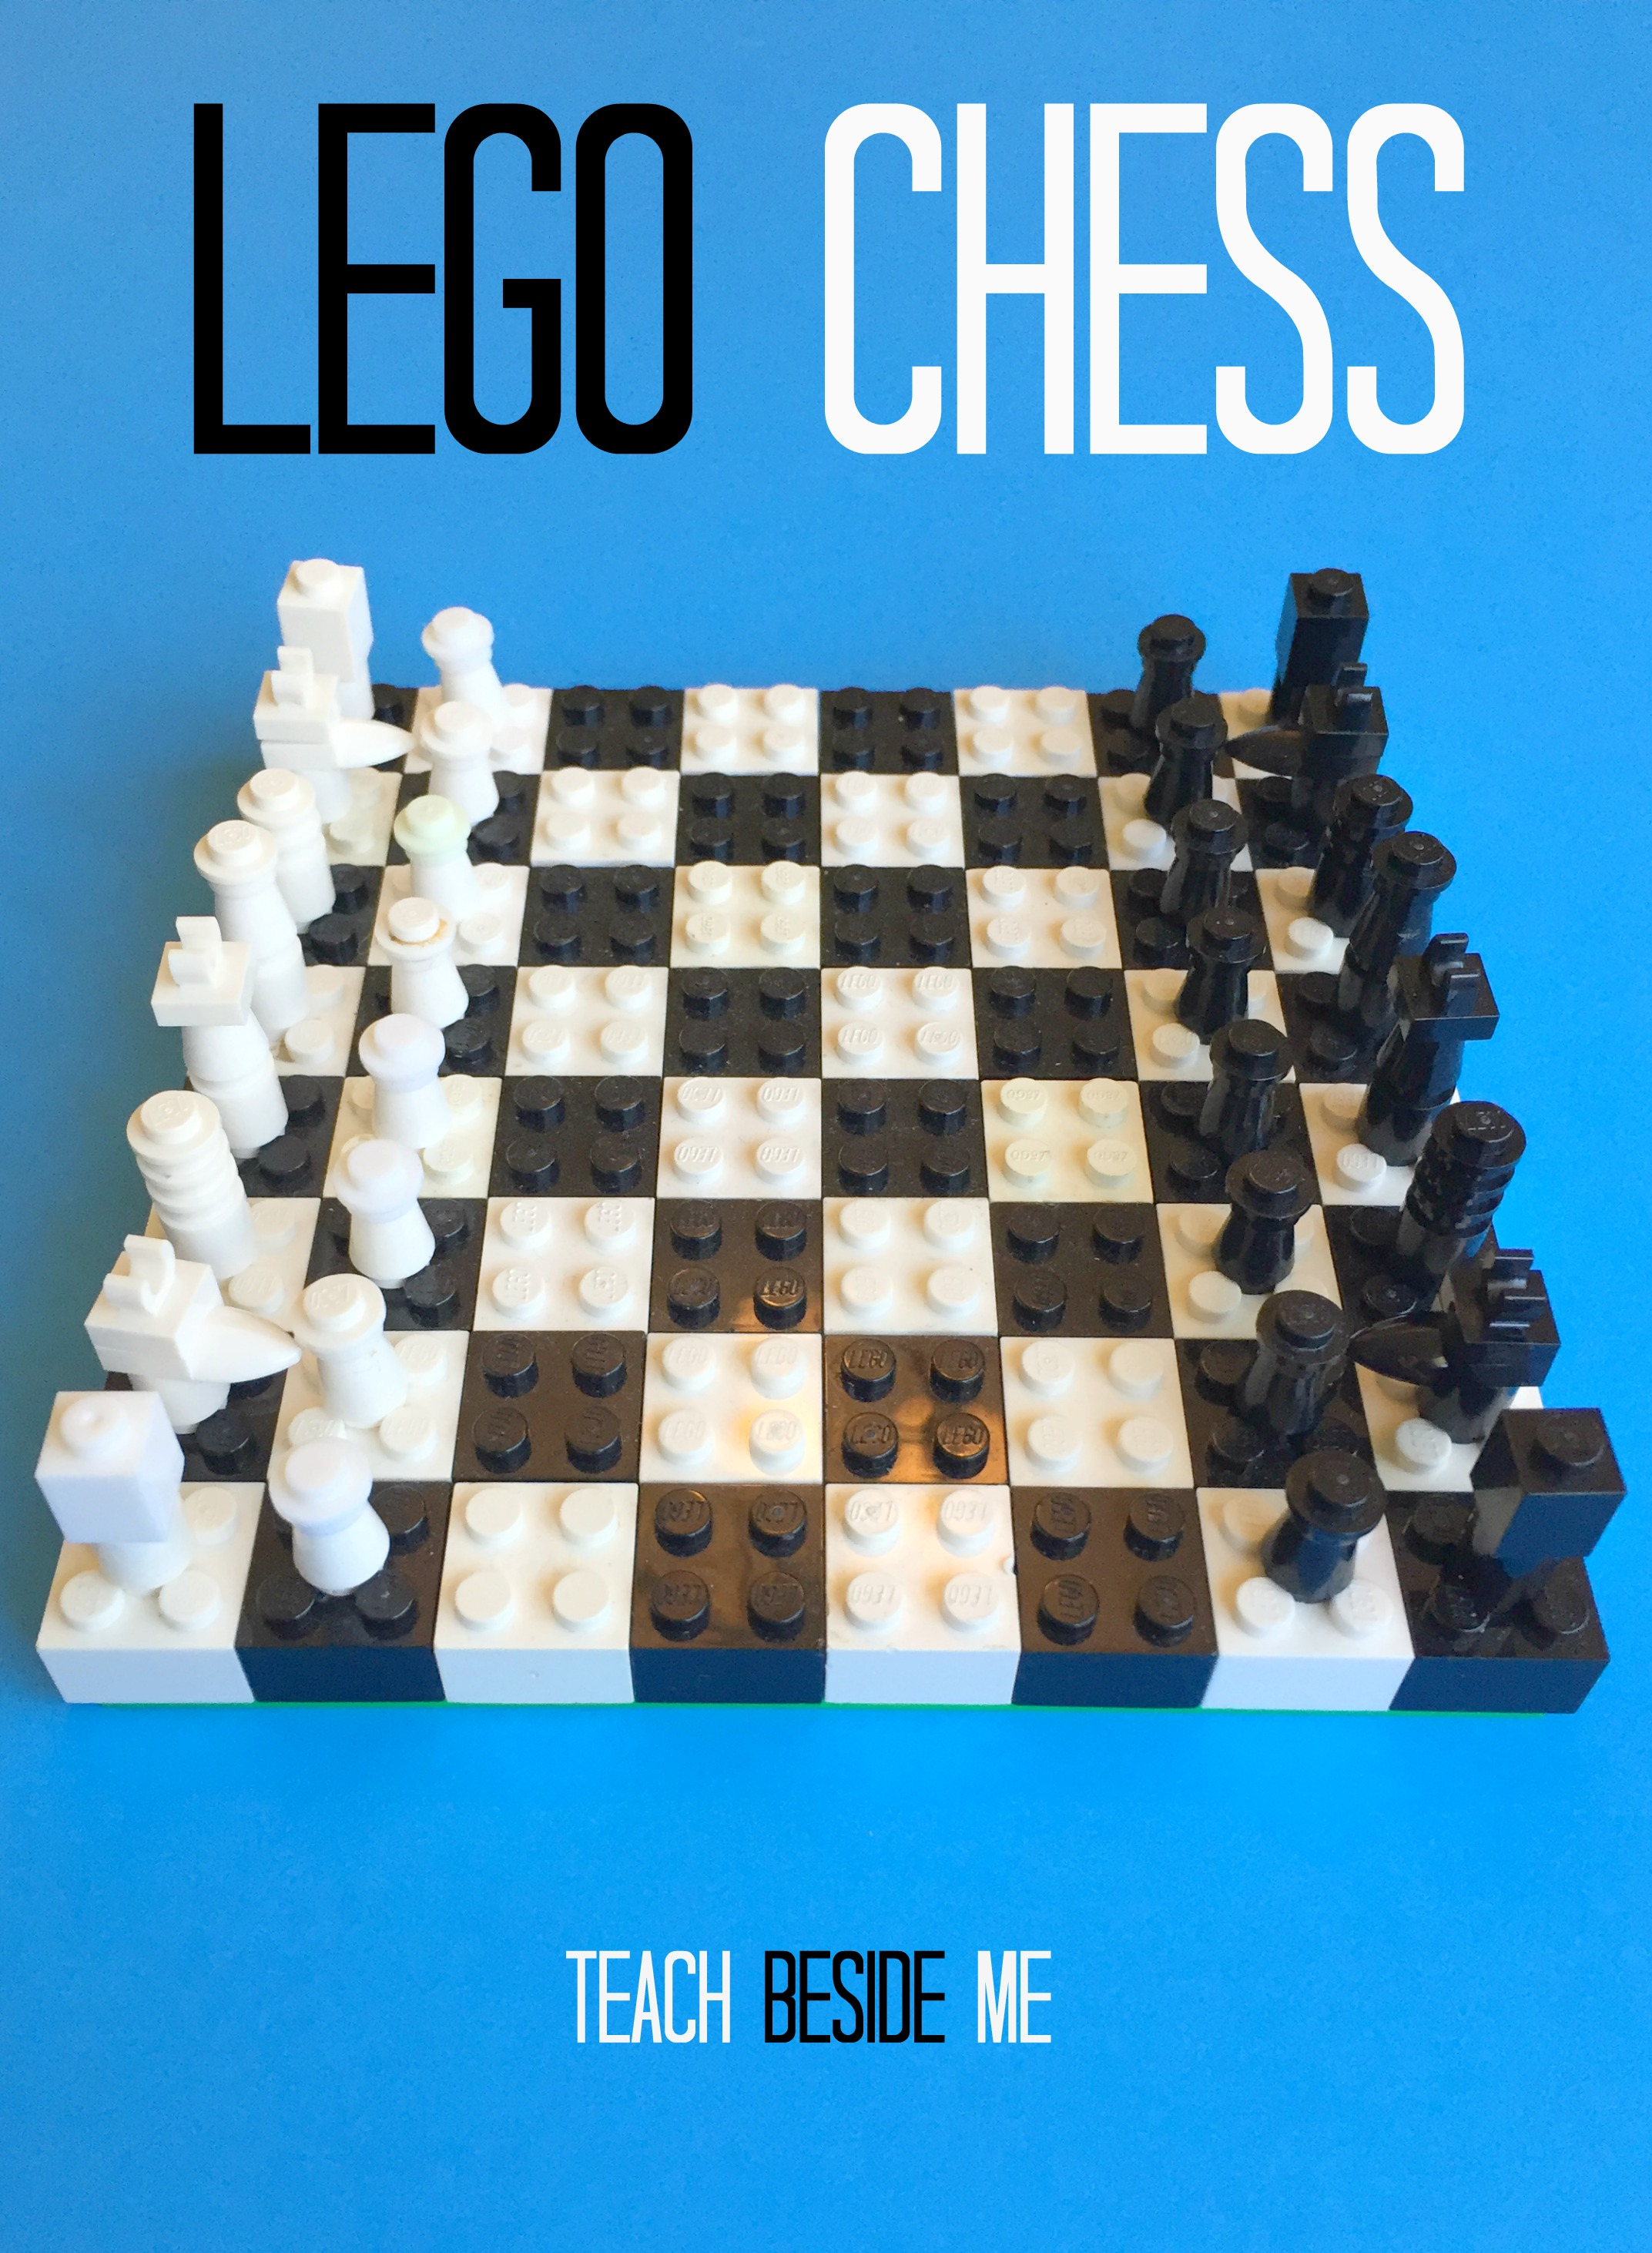 How To Make a Lego Chess Set